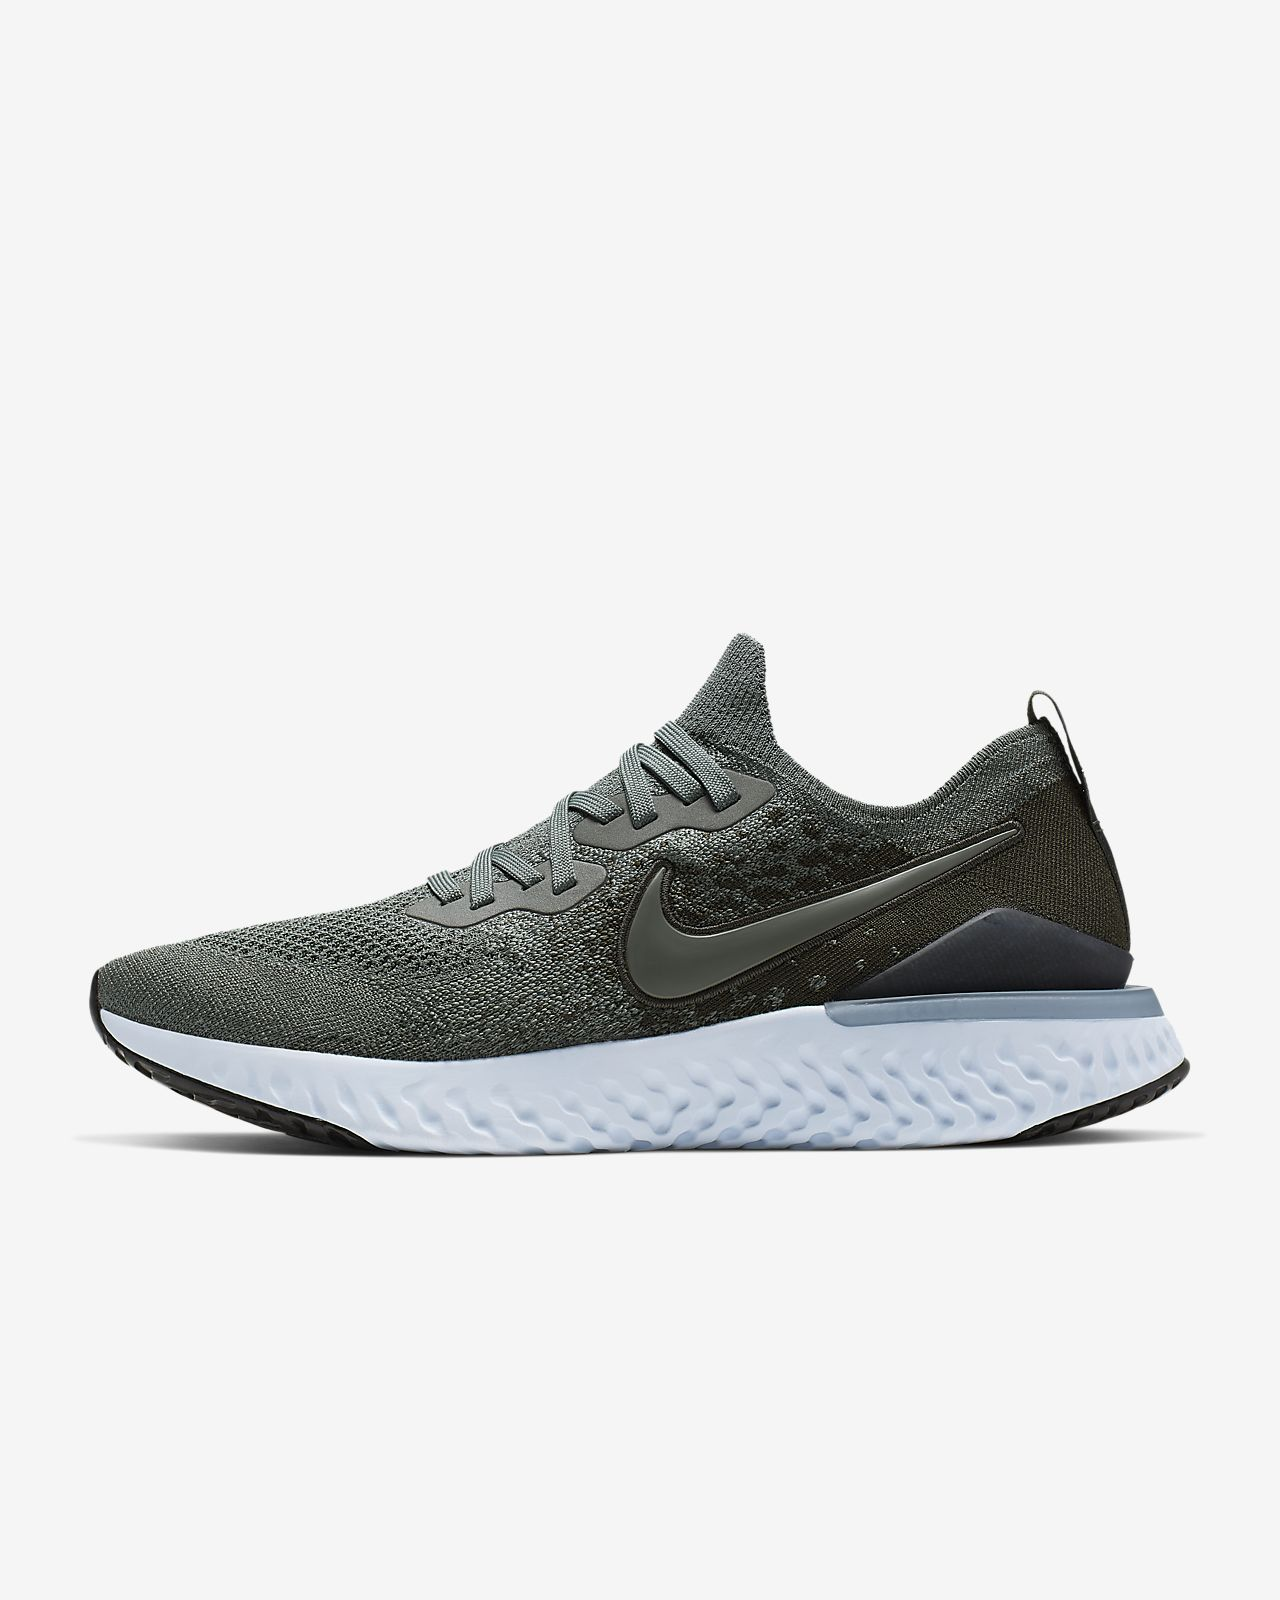 063681b39d847 Nike Epic React Flyknit 2 Men s Running Shoe. Nike.com NO